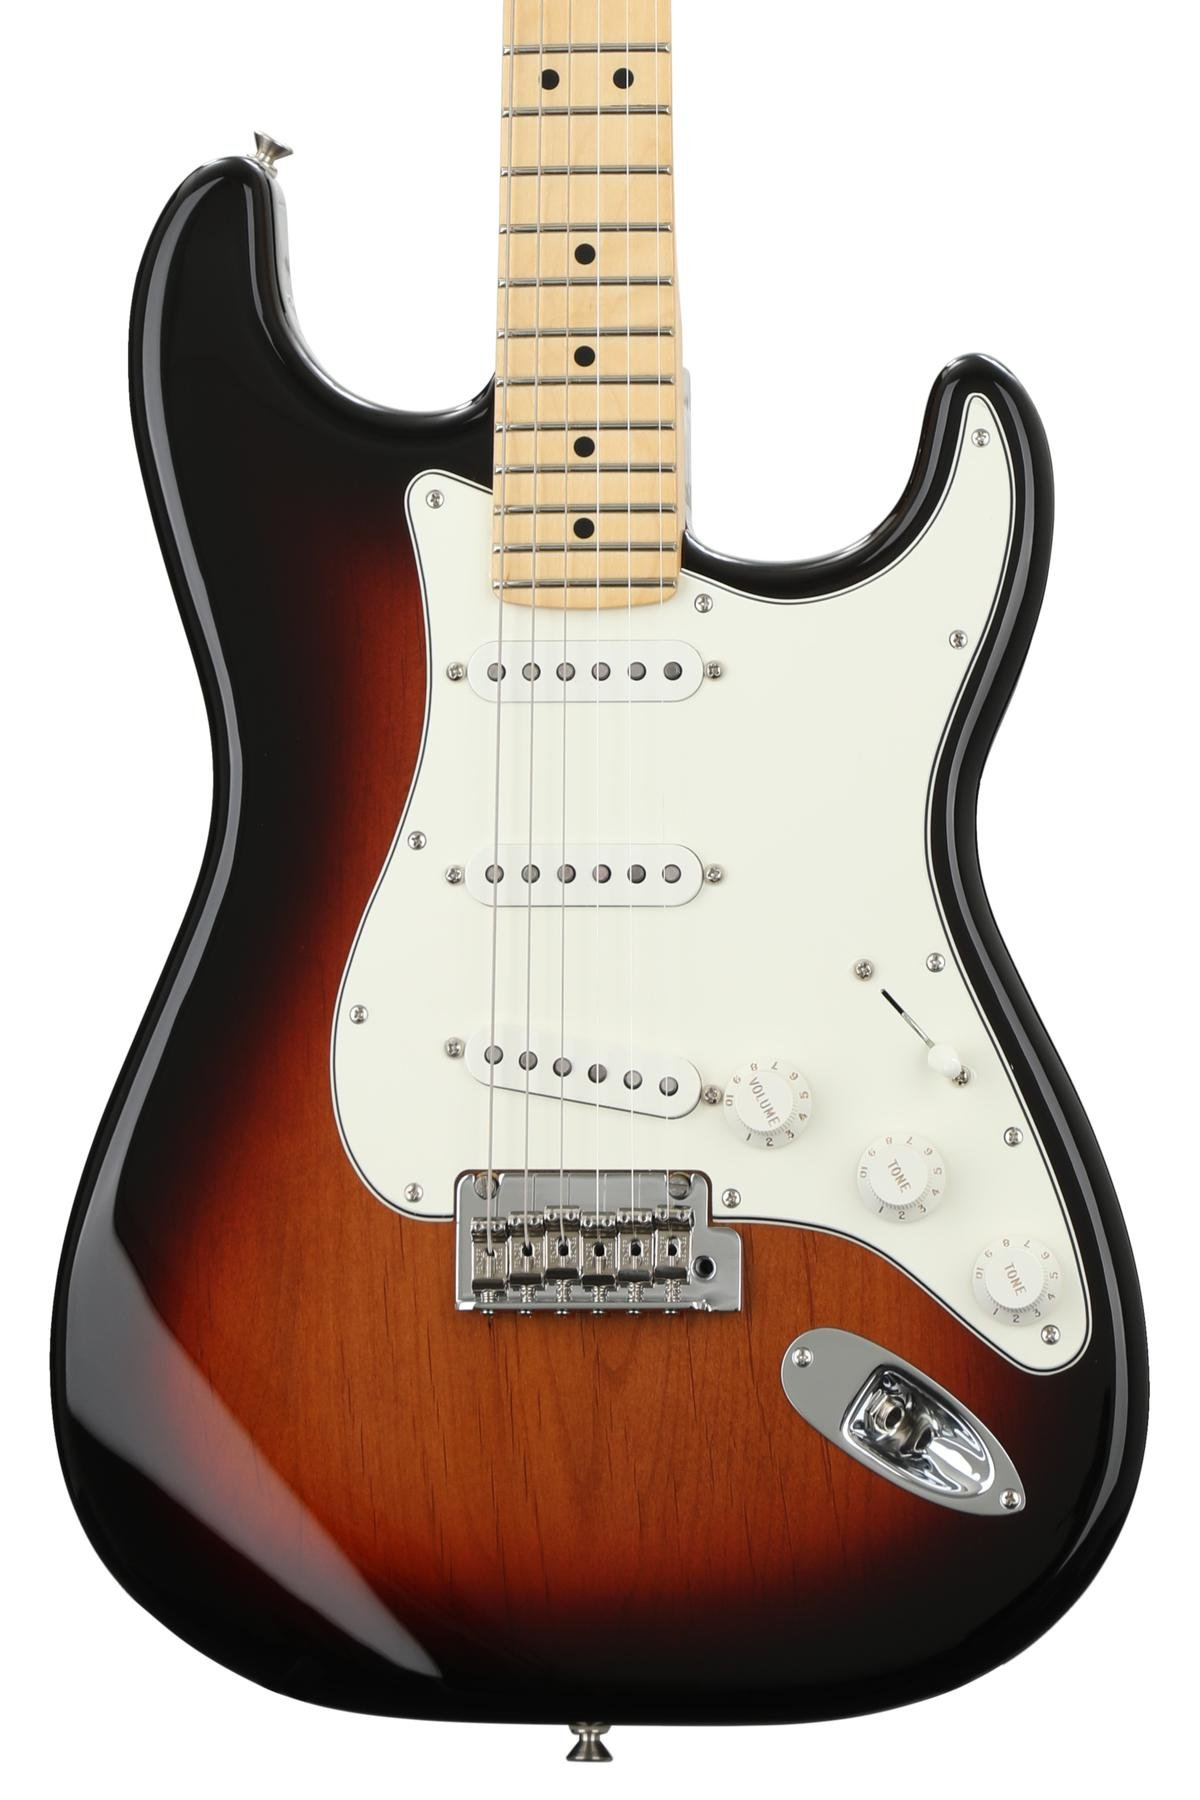 Fender Player Series Stratocaster 3 Tone Sunburst W Maple Keep Us Posted On Your Pickup And Control Requirements I Can Fingerboard Image 1